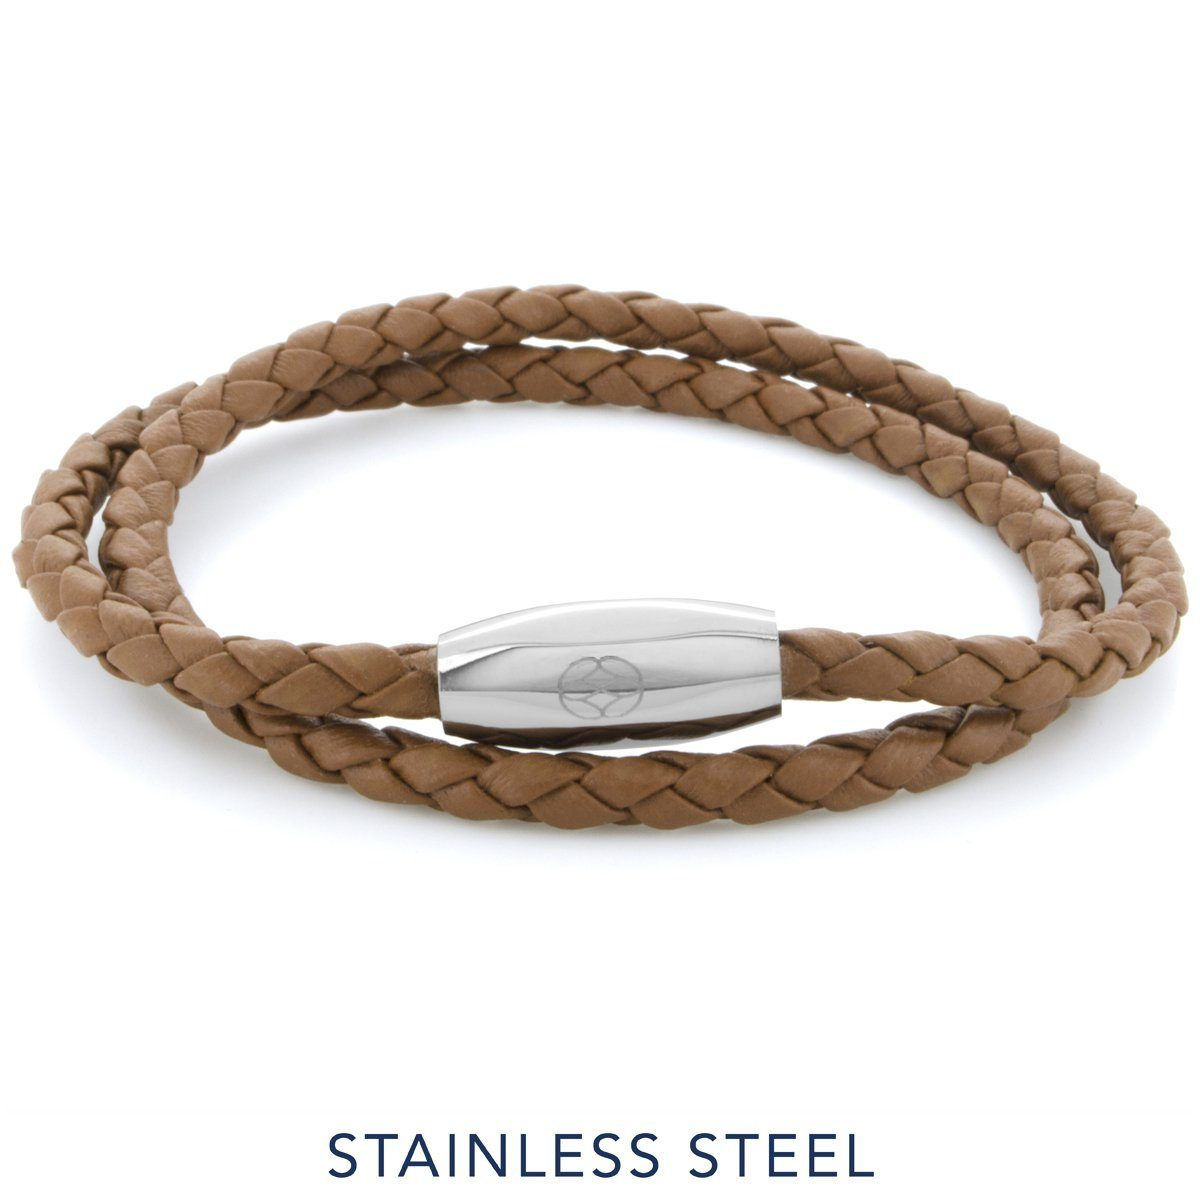 Bracelet - Numana Double 4 Mm Brown Nappa Leather